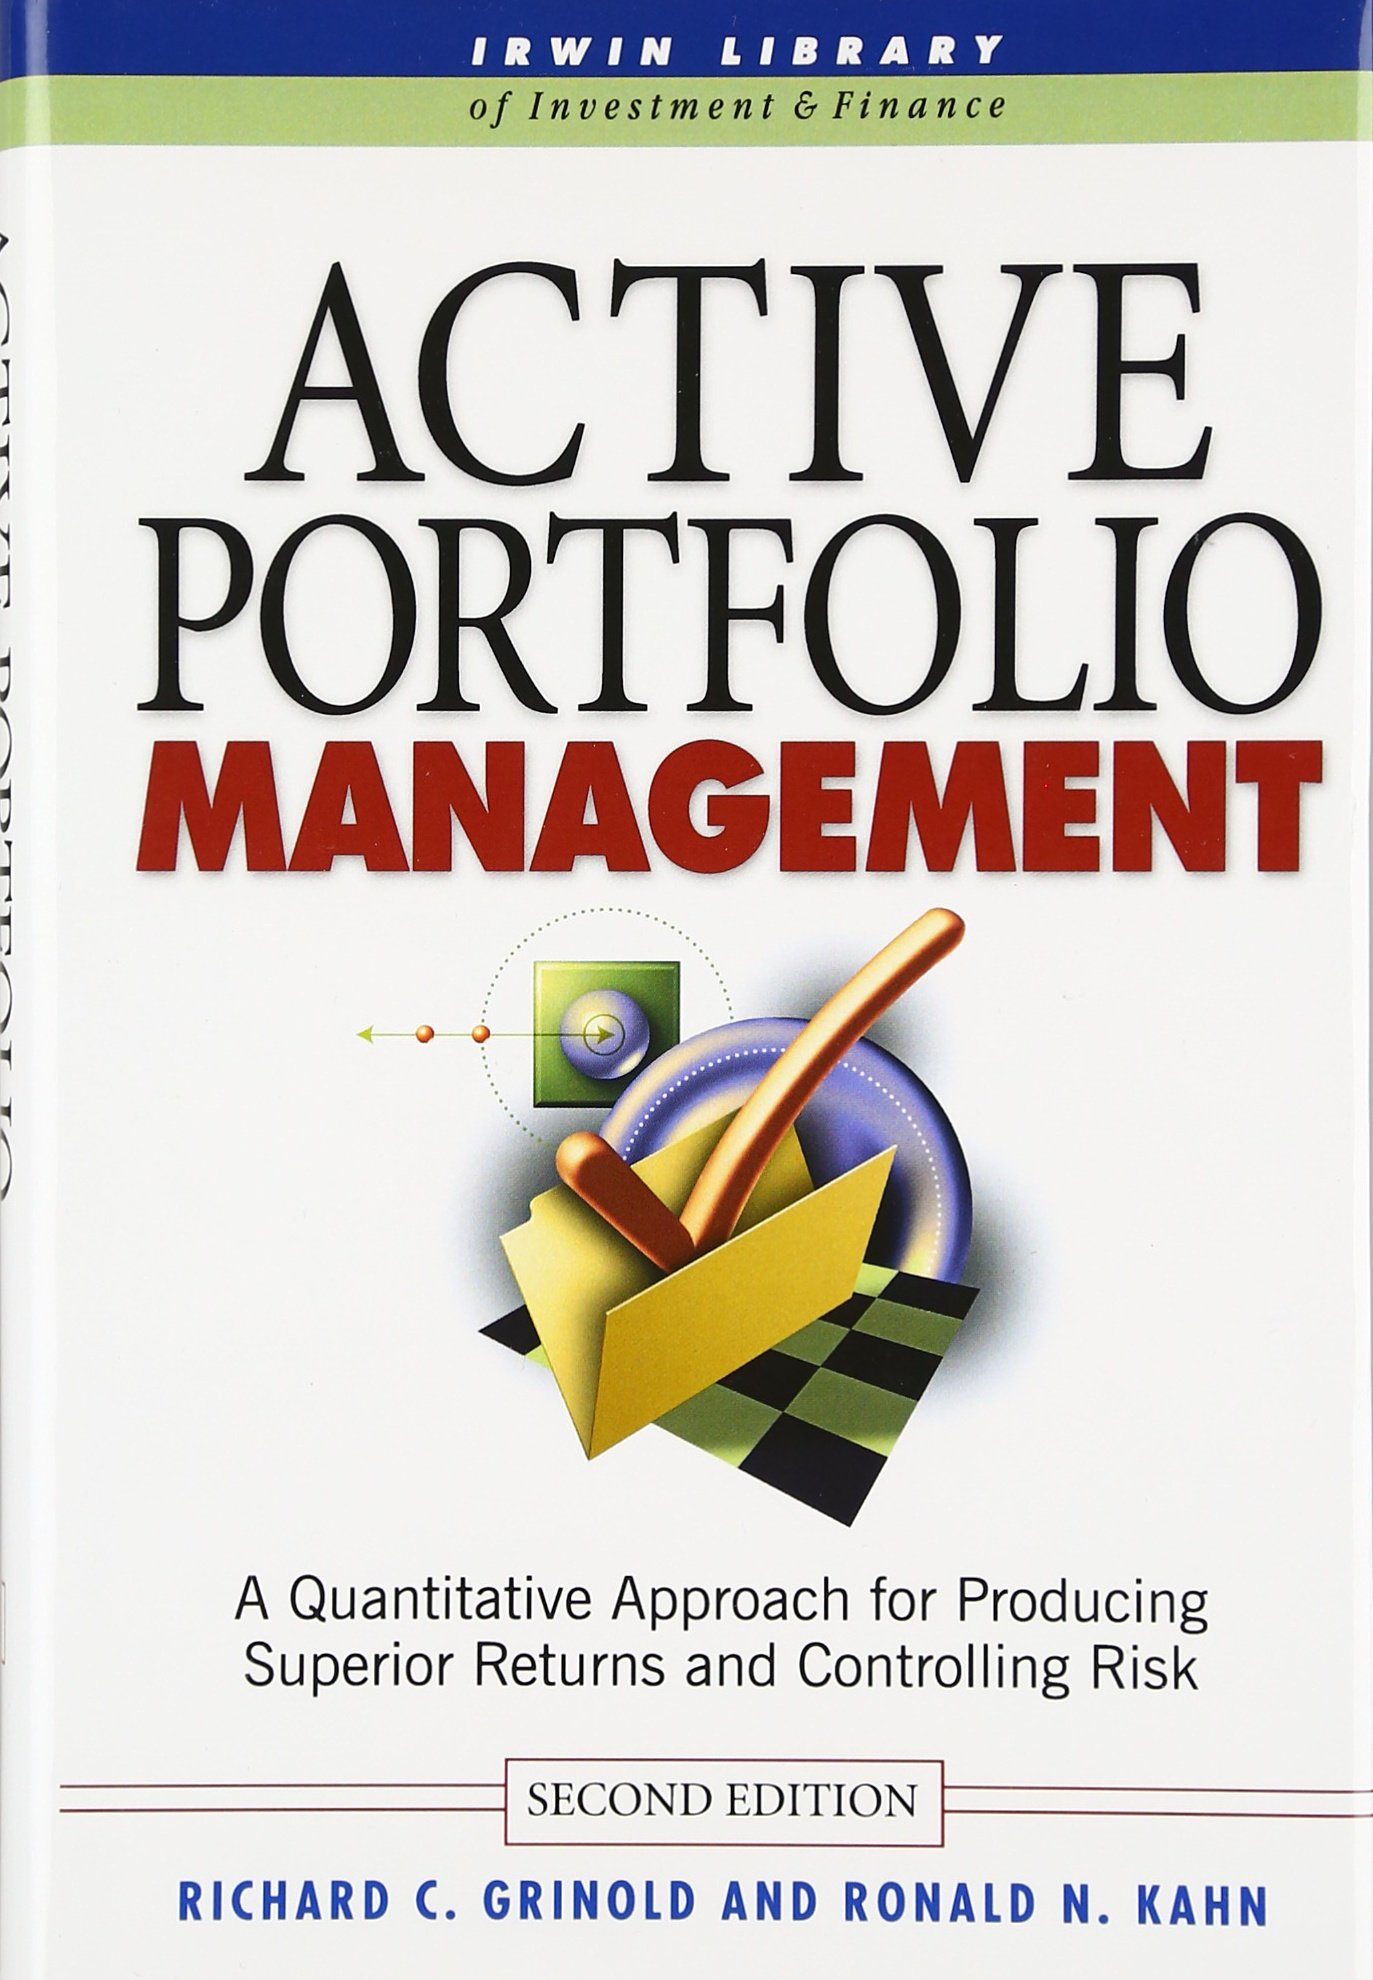 Active Portfolio Management: A Quantitative Approach for Producing Superior Returns and Controlling Risk by McGraw-Hill Education